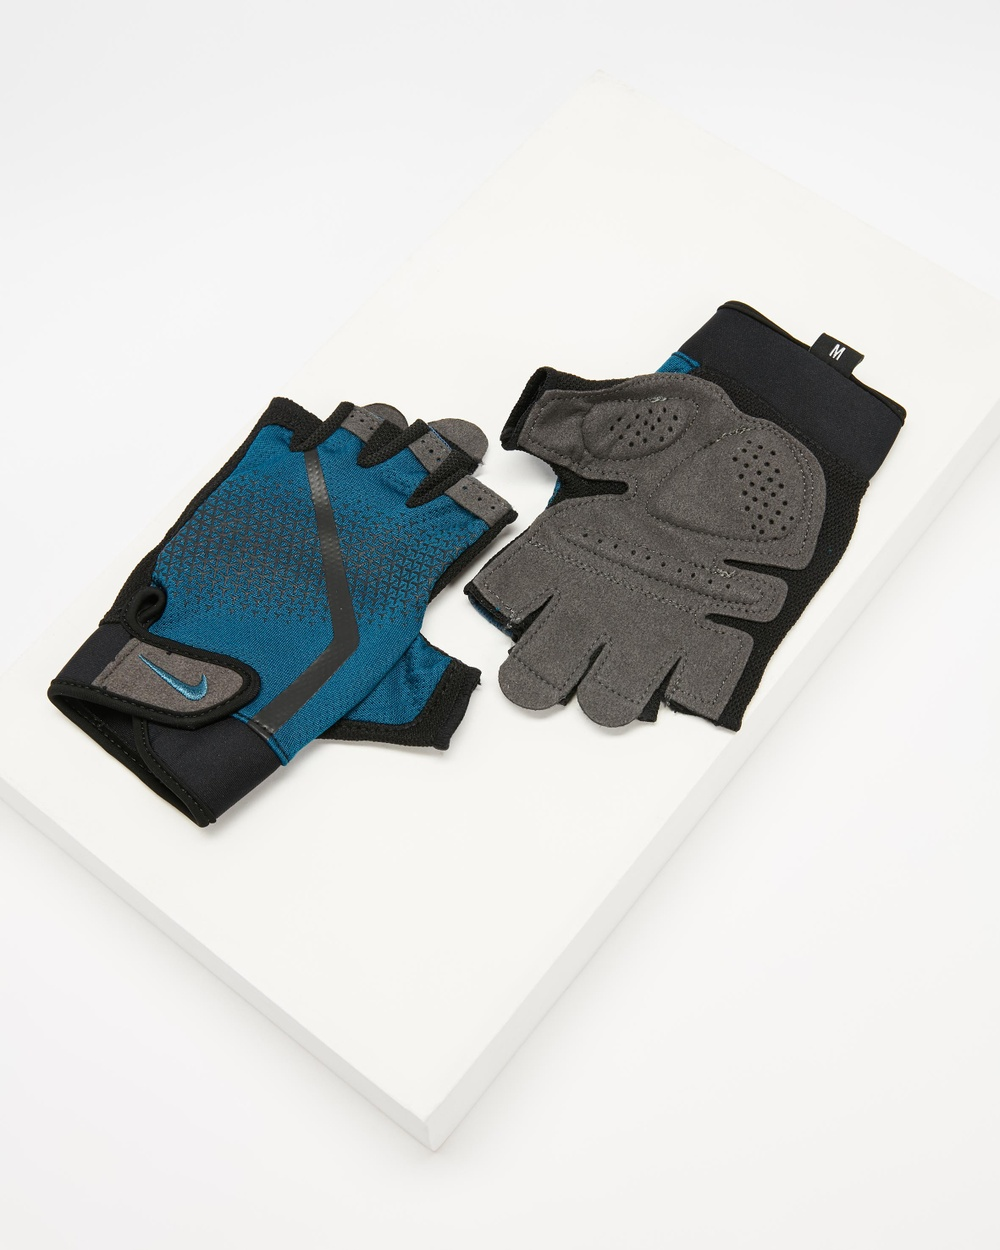 Nike Extreme Fitness Gloves Men's Accessories Blue Force & Black